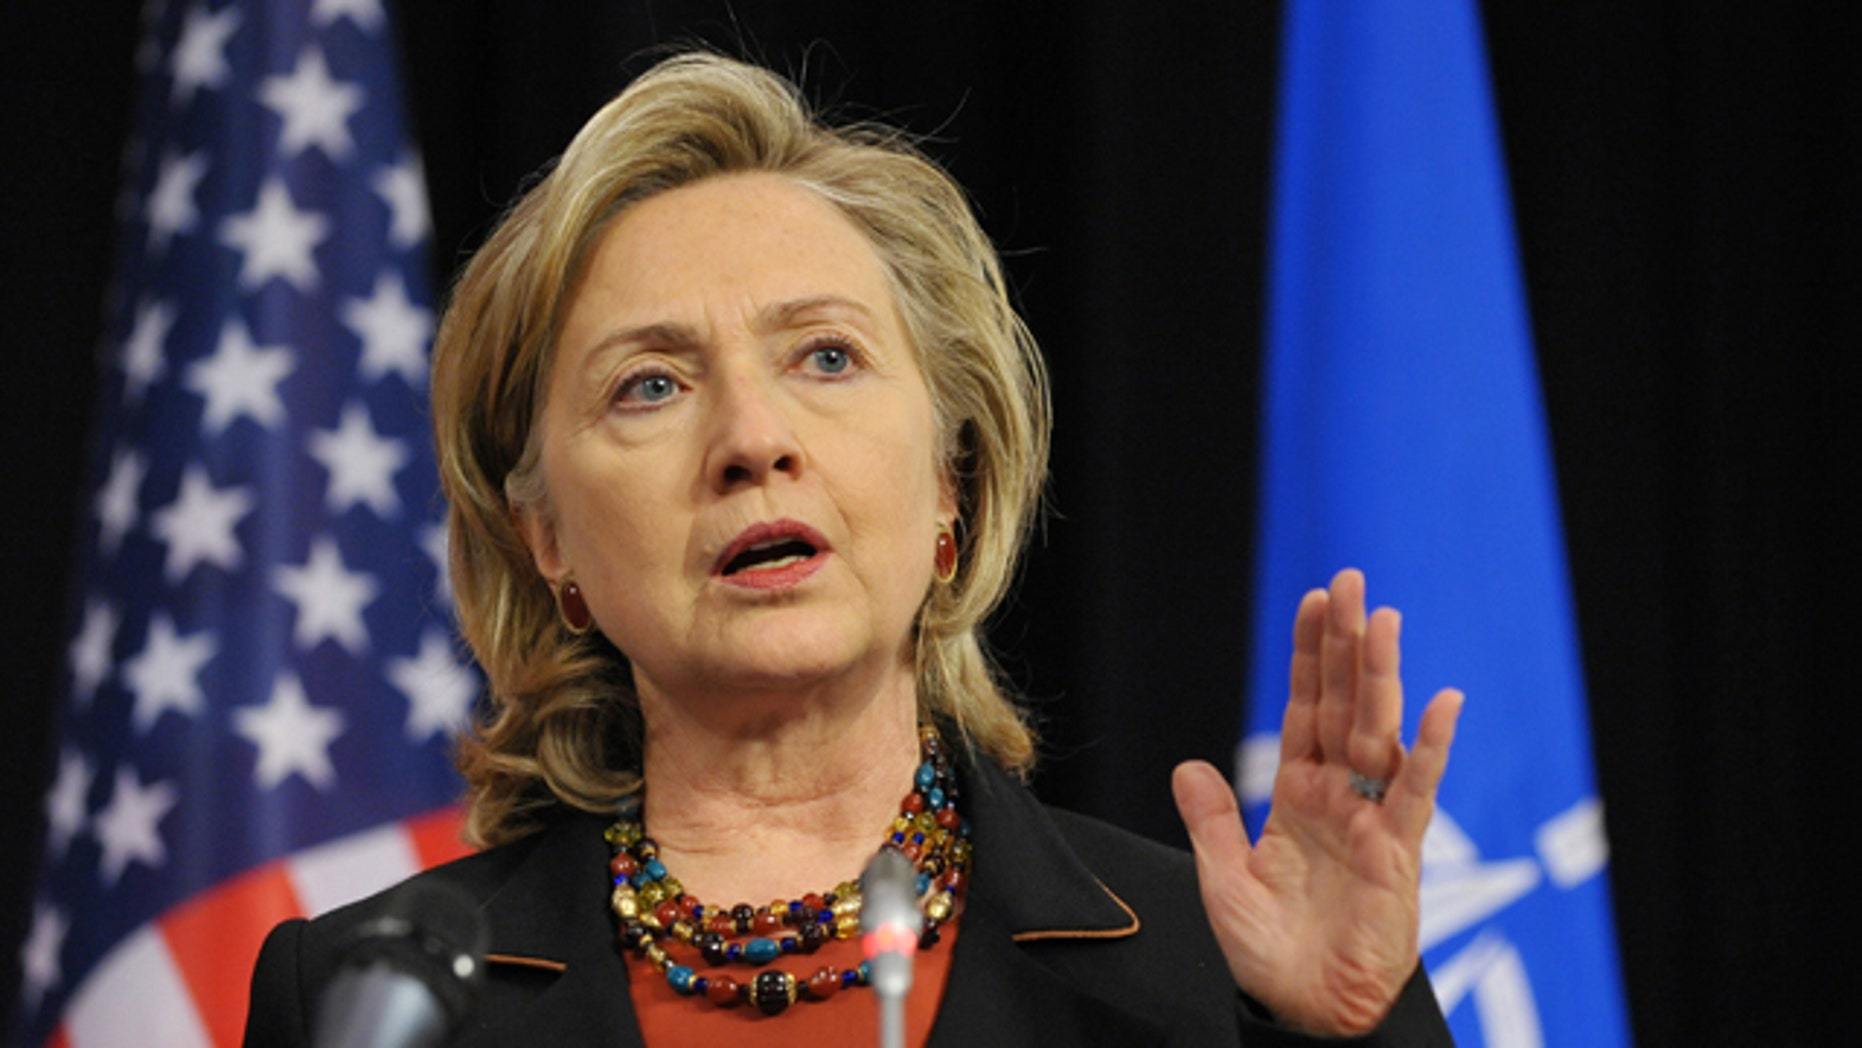 Oct. 14, 2010: US Secretary of State Hillary Clinton speaks during a joint press conference with Defense Secretary Robert Gates, at NATO Headquarters in Brussels.